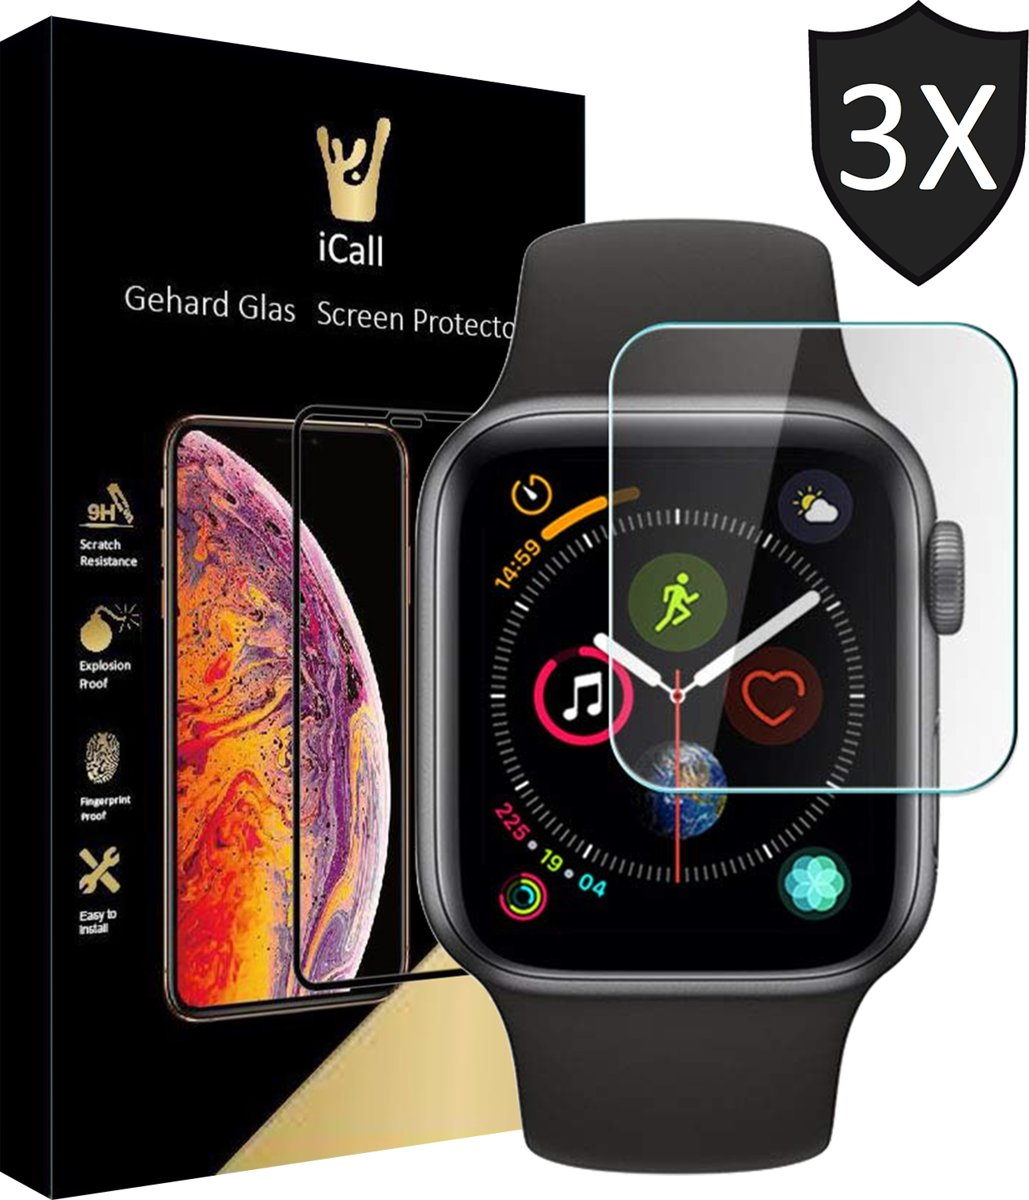 3x Apple Watch Series 1 / 2 / 3 42 mm Screenprotector Glazen Gehard | Tempered Glass Screen Protector iCall kopen